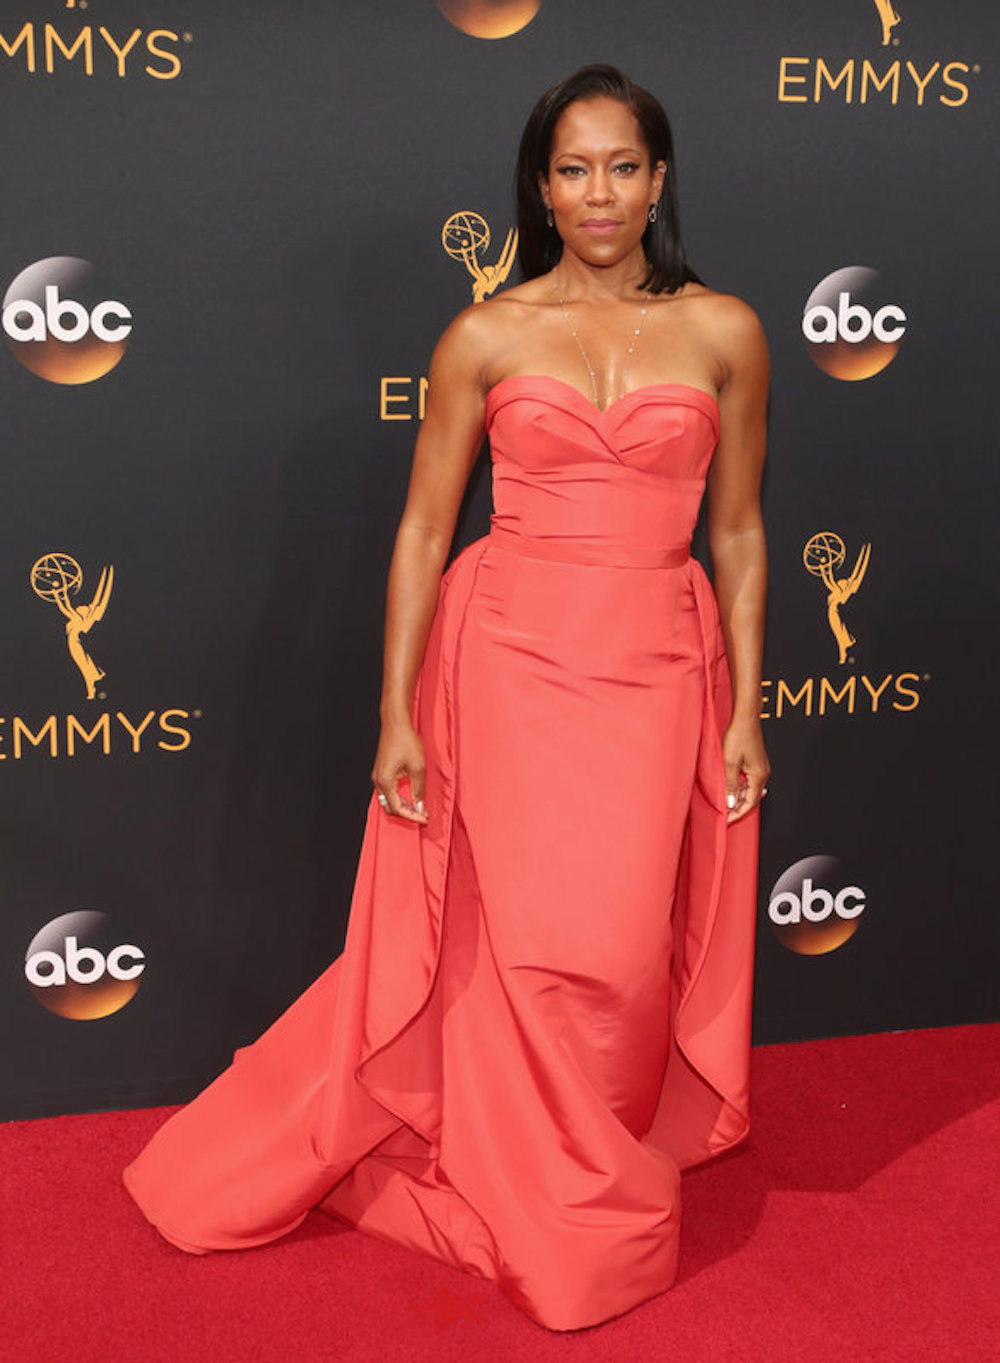 Regina King in Elizabeth Kennedy at the 2016 Emmy Awards. Image courtesy of Tod Williamson/Getty.